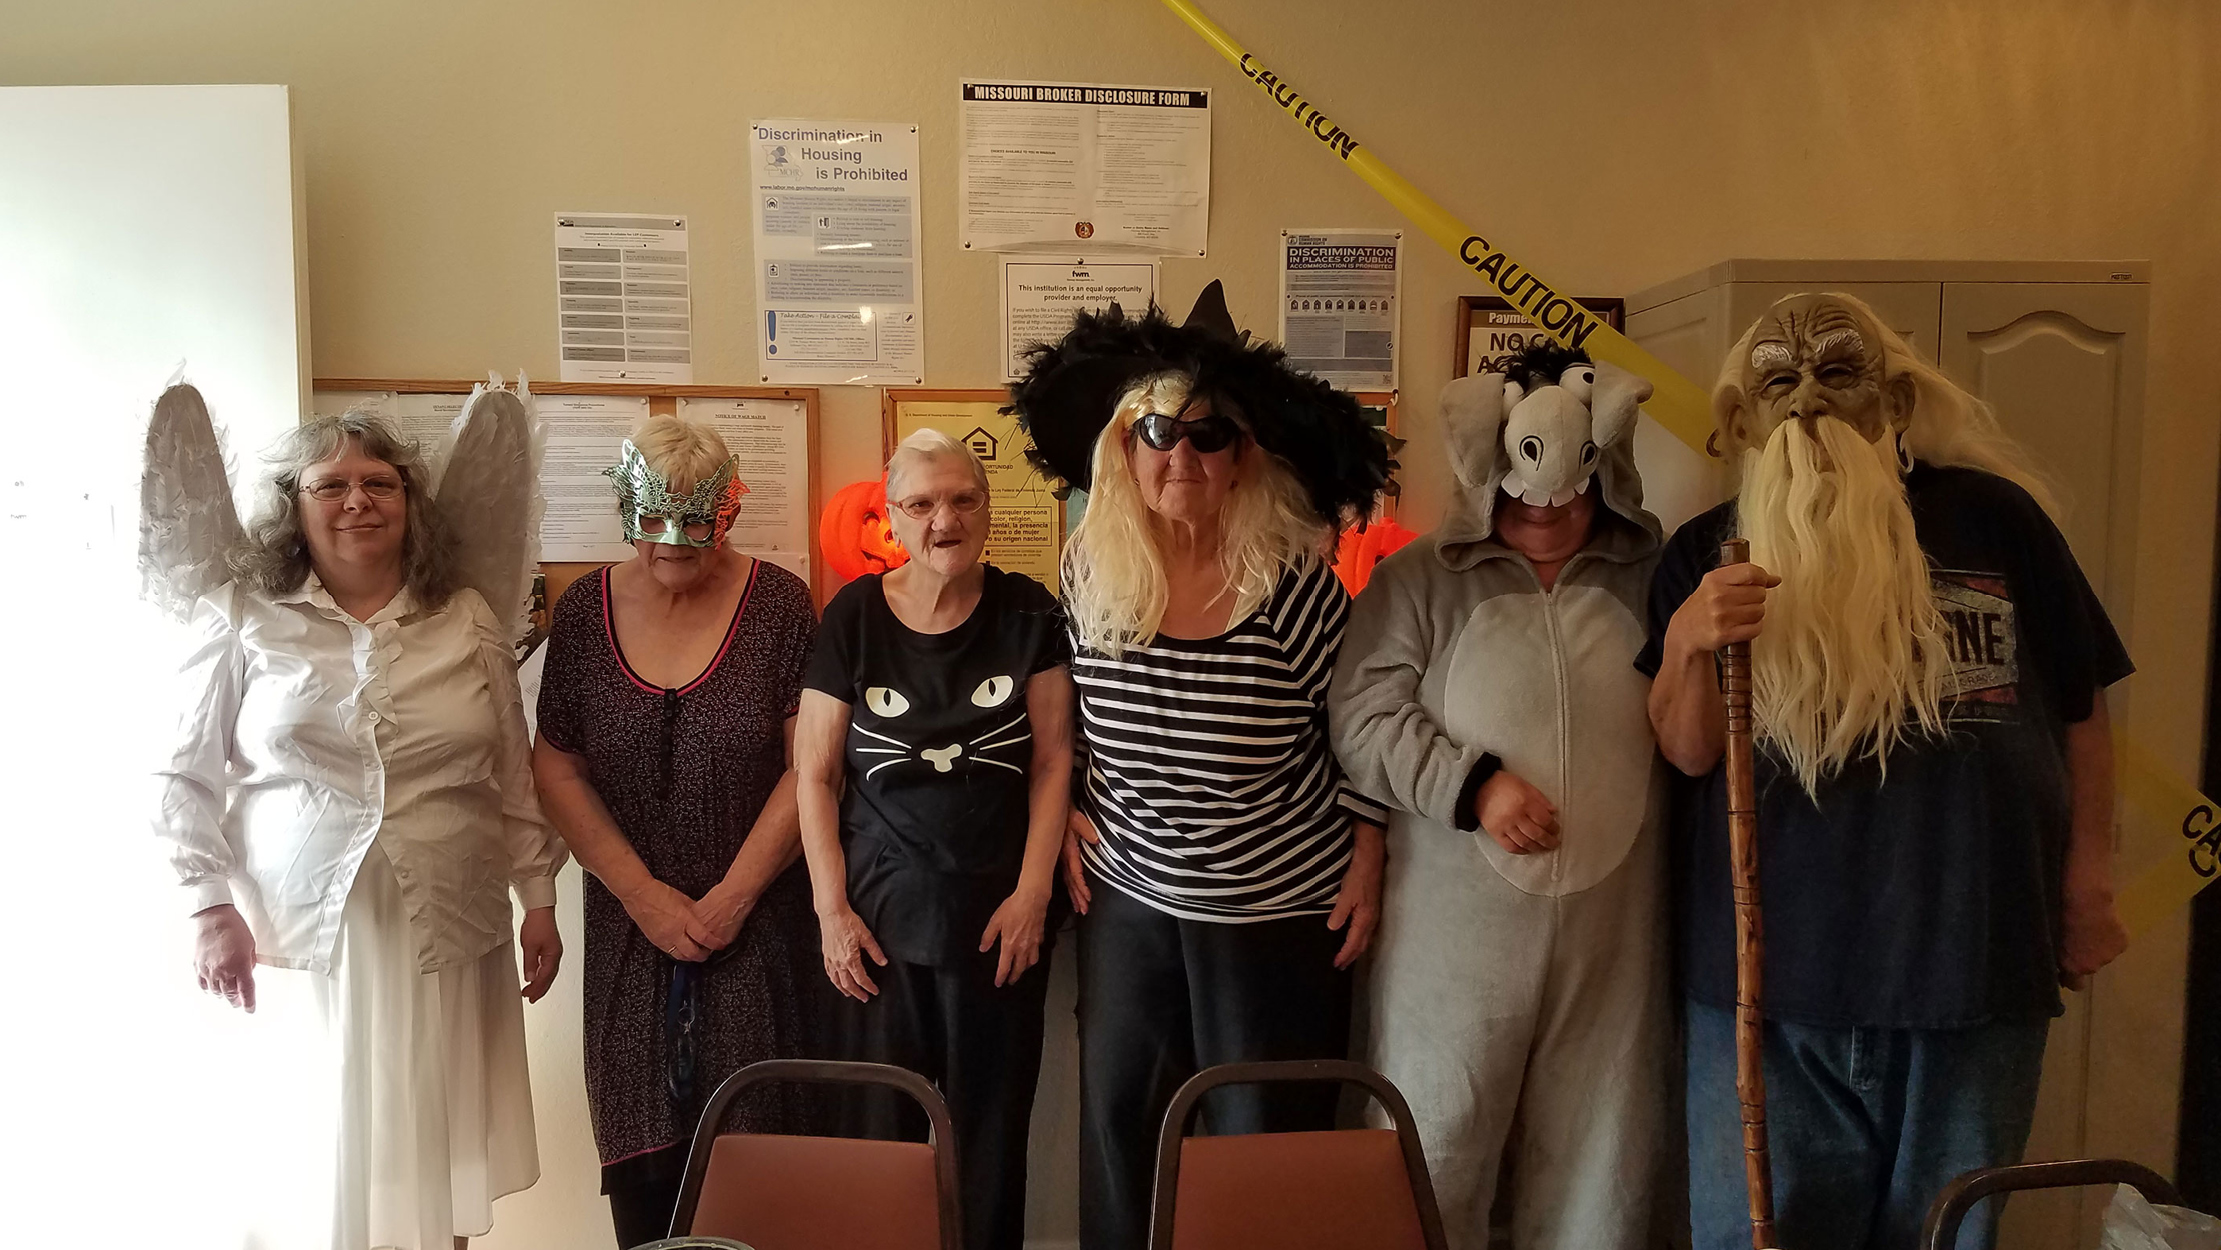 Ironton Estates, A Fairway Management Senior Community Located In Ironton, Missouri, Recently Hosted Their Annual Halloween Party & Contest At The End Of October.